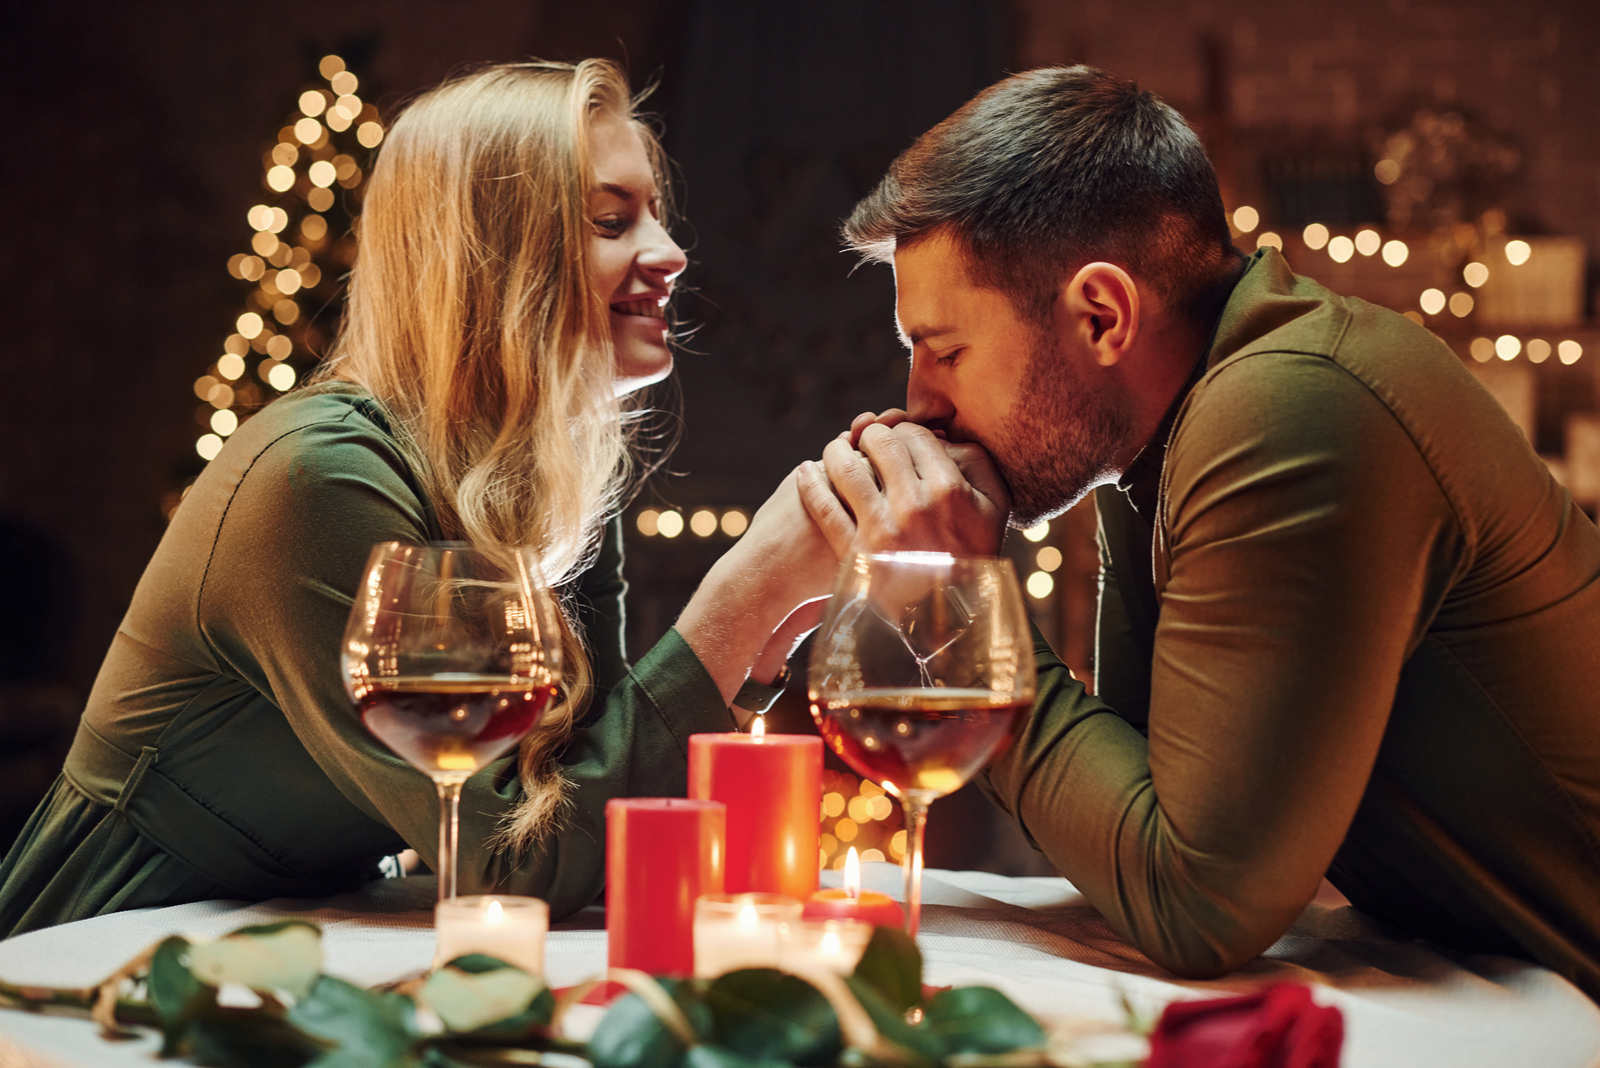 a man kisses a woman's hands as they sit at a table